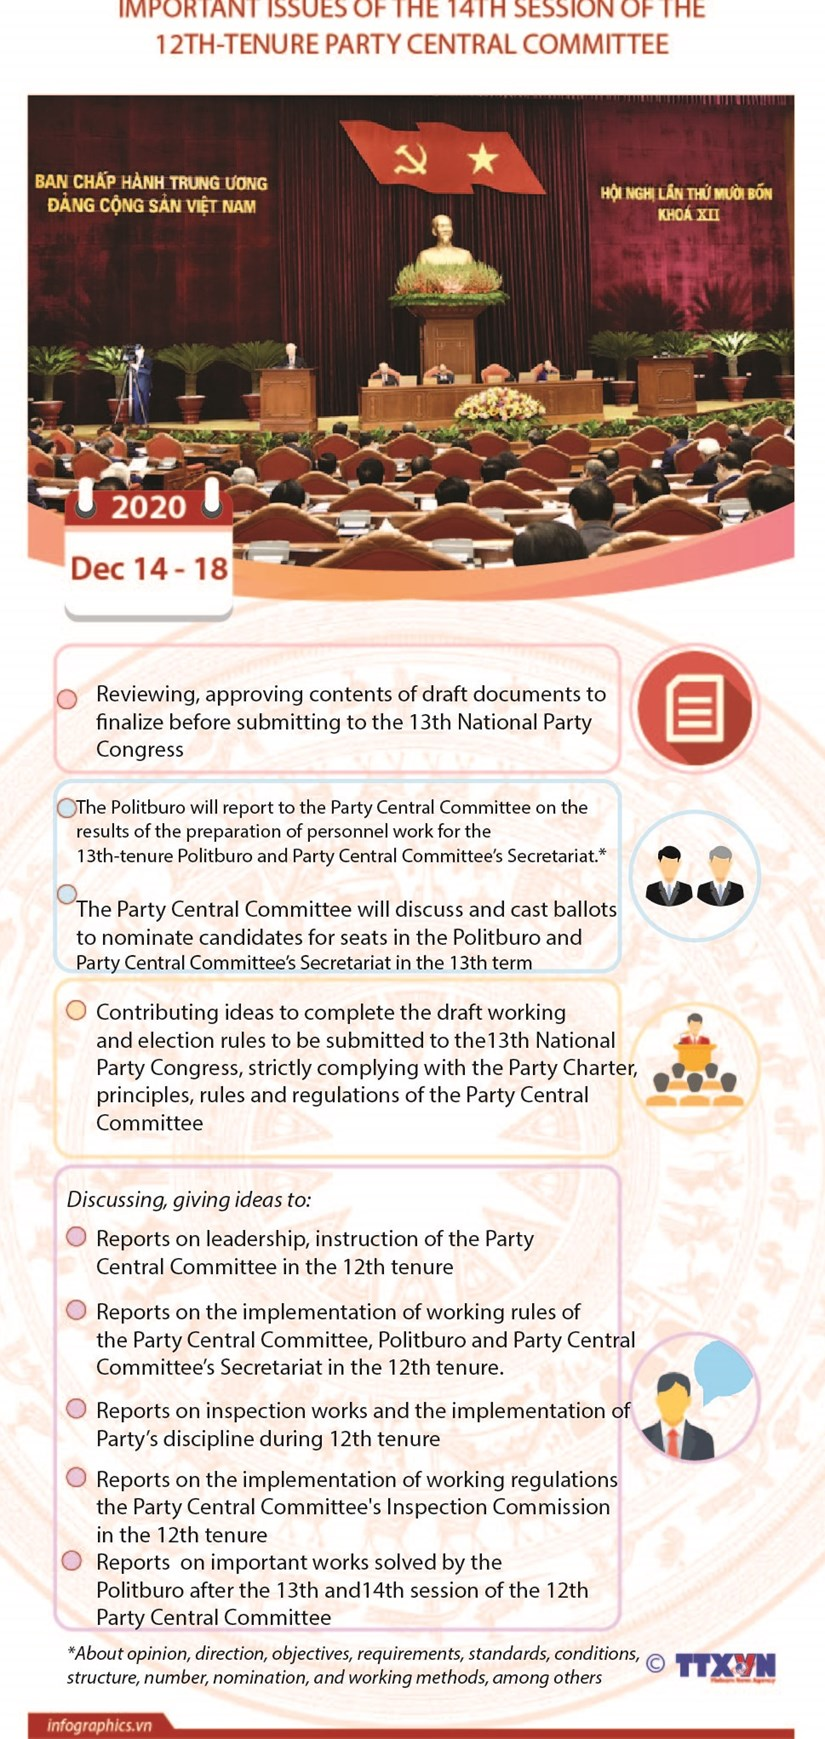 Important issues of Party Central Committee's 14th session hinh anh 1